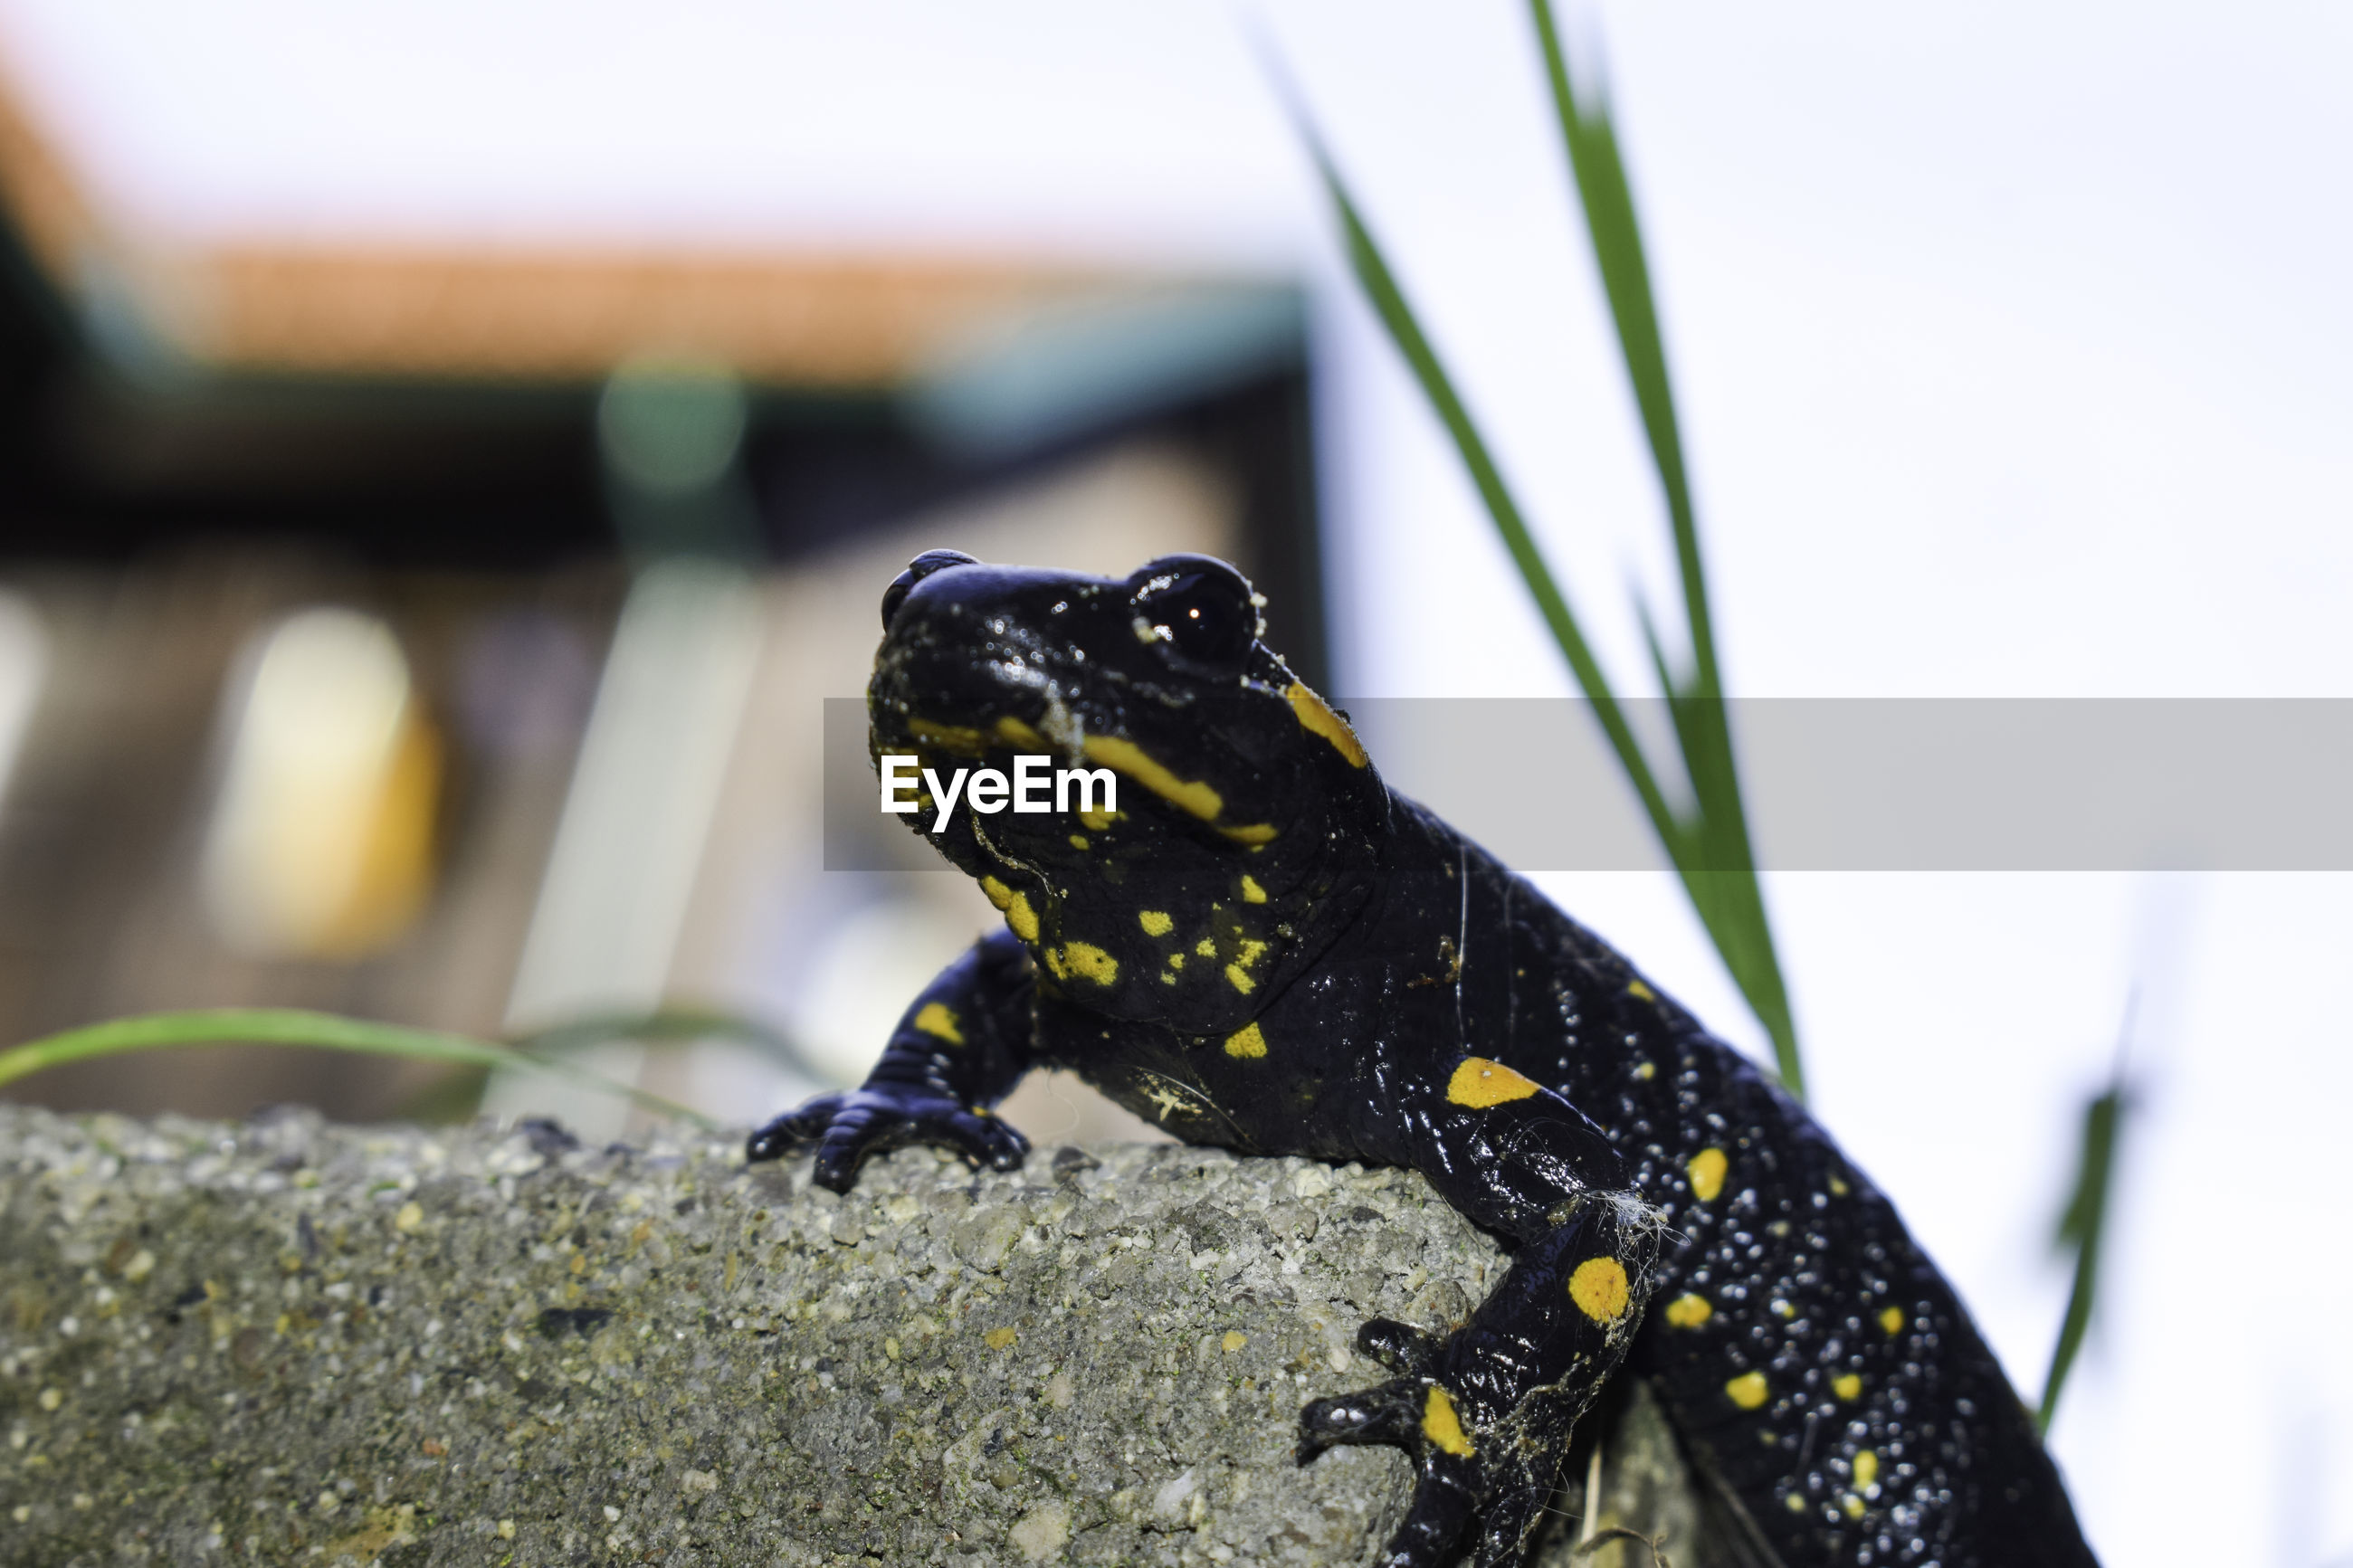 CLOSE-UP OF A LIZARD ON A A BLURRED BACKGROUND